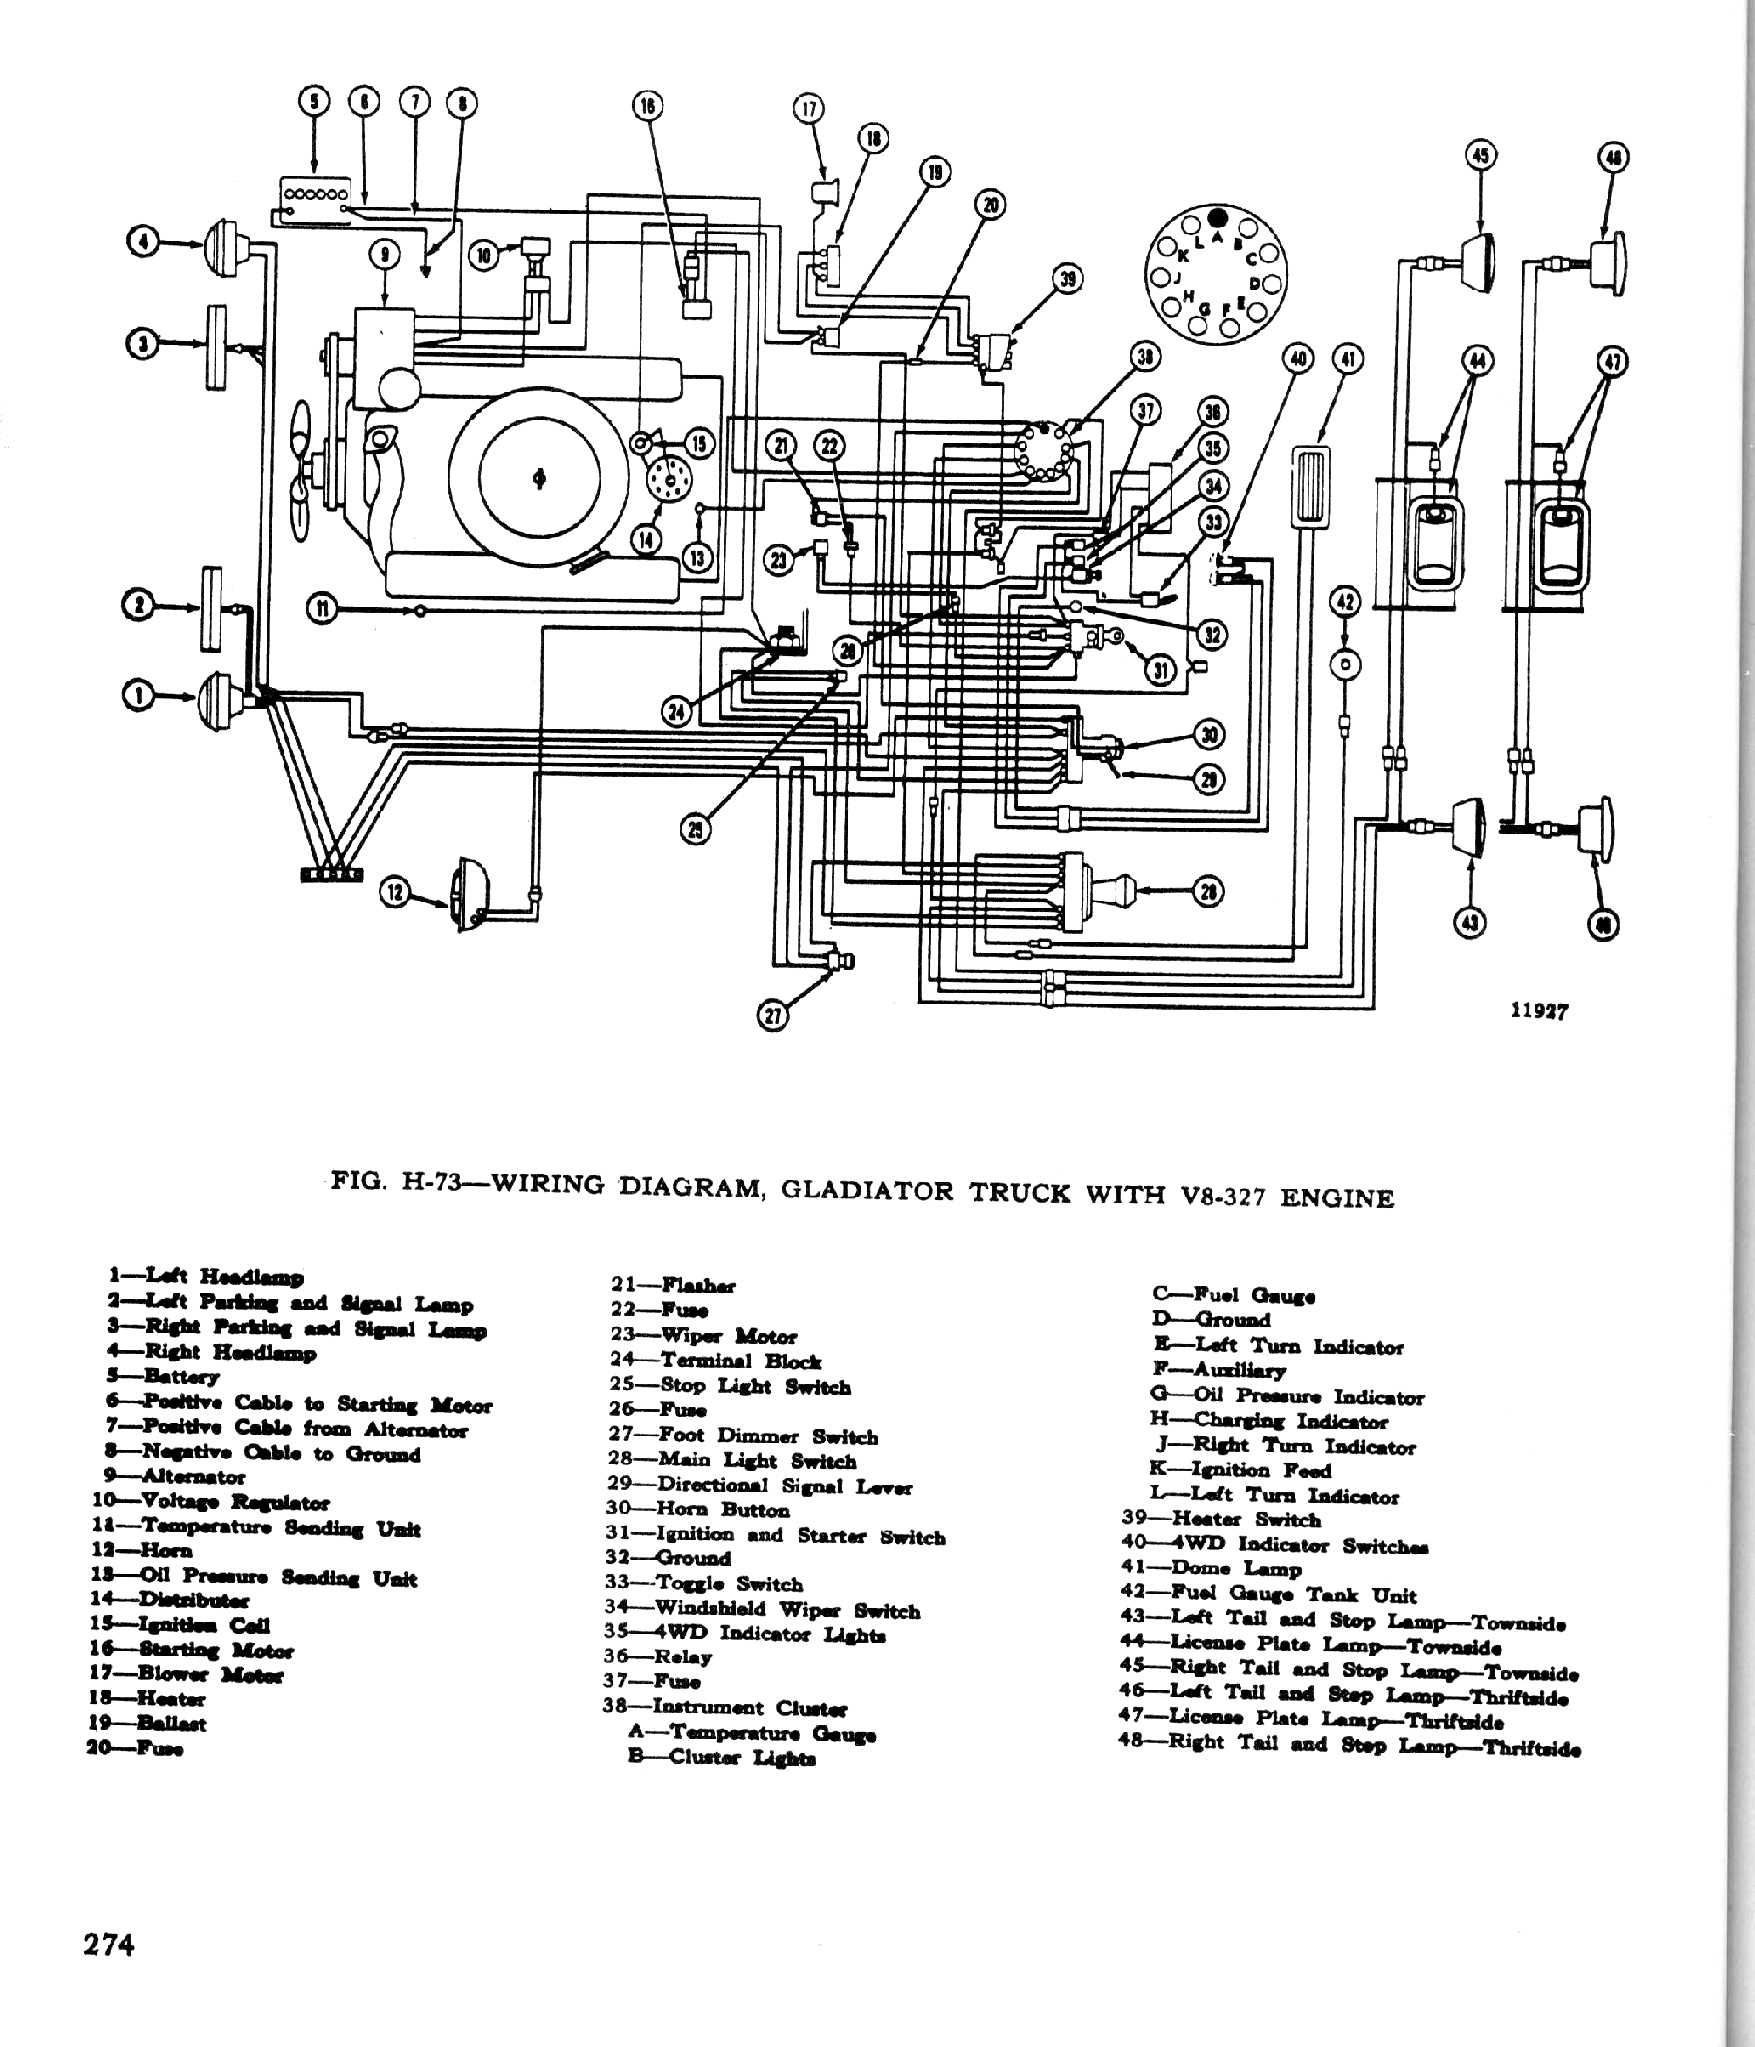 Jeep Gladiator Wiring Car Fuse Box Diagram John Meister 2014 Rh Johnmeister Com Brute Forward Control